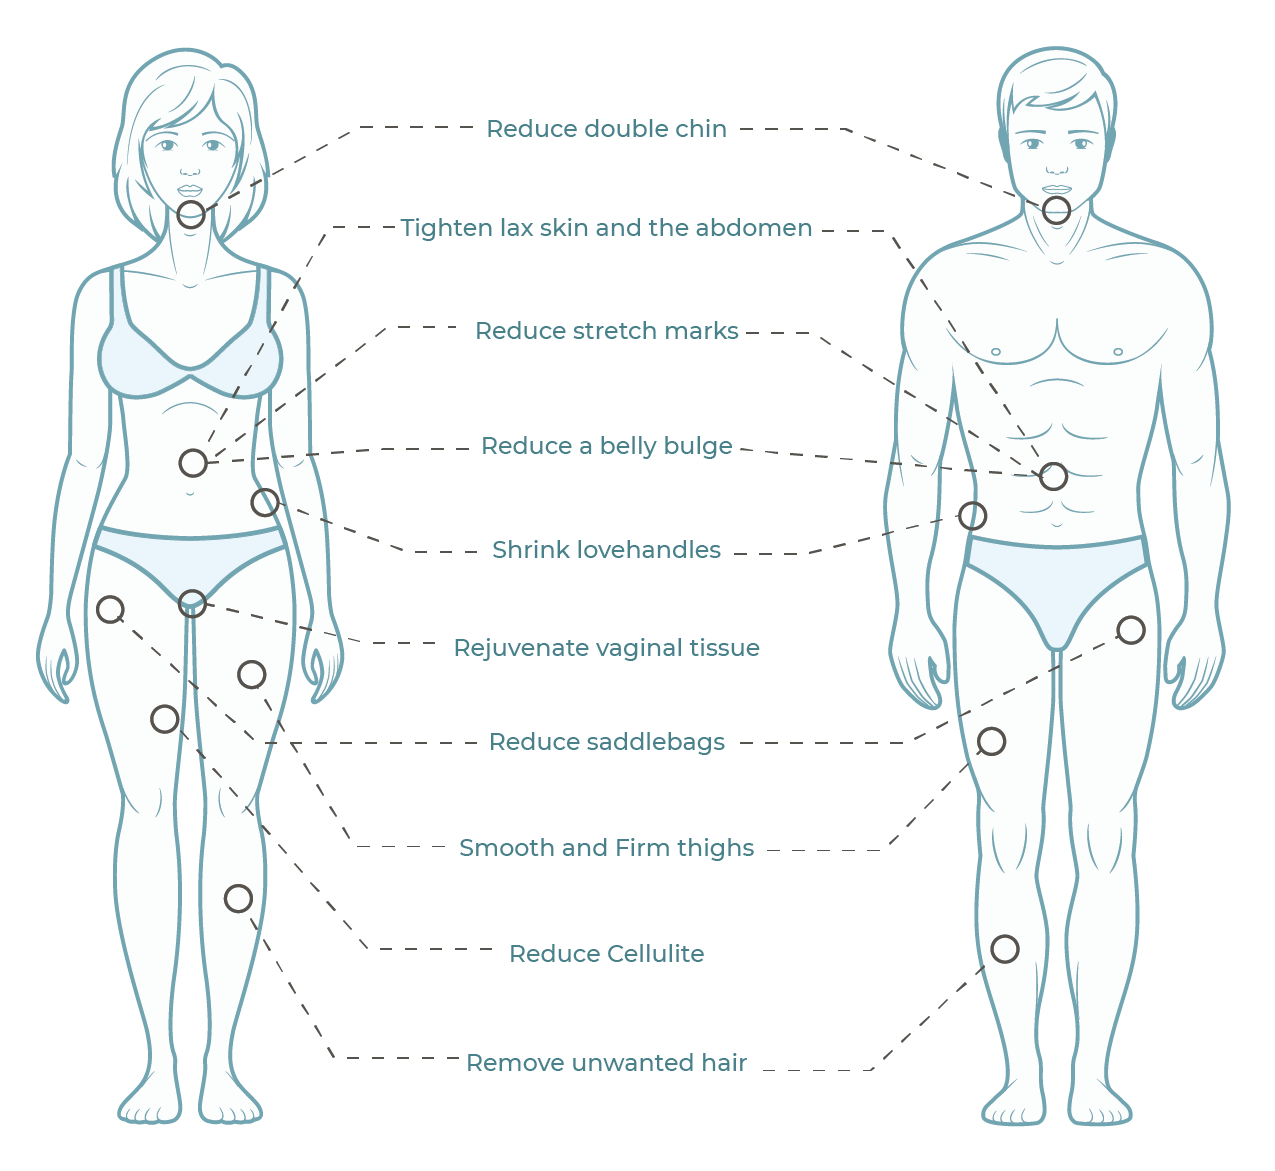 HOW CAN NON-SURGICAL TREATMENT IMPROVE YOUR BODY?